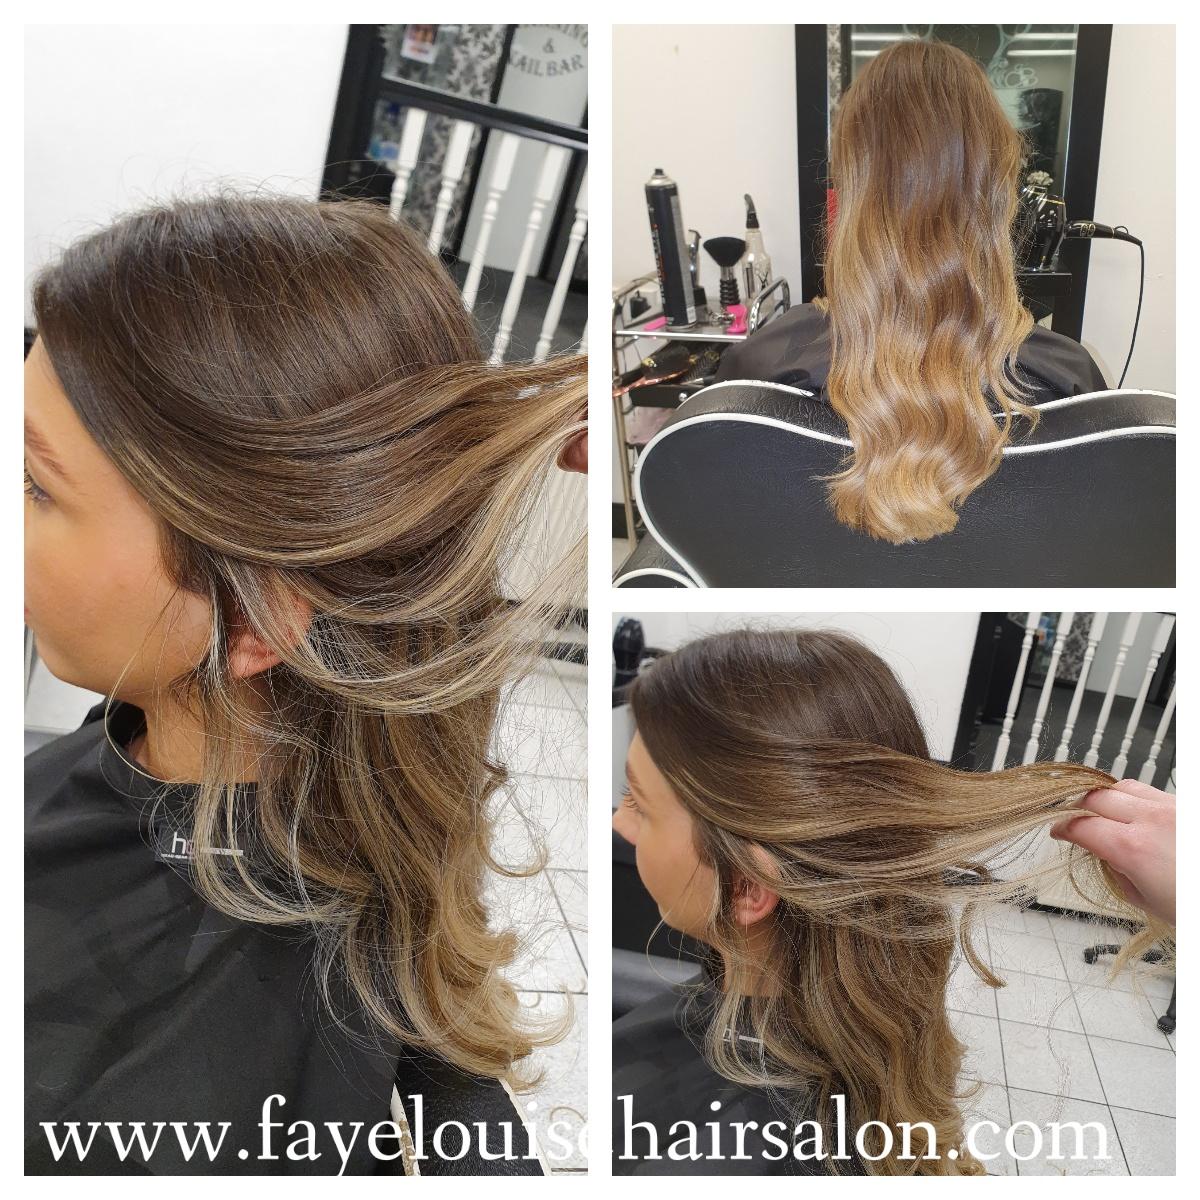 faye-louise-hair-salon